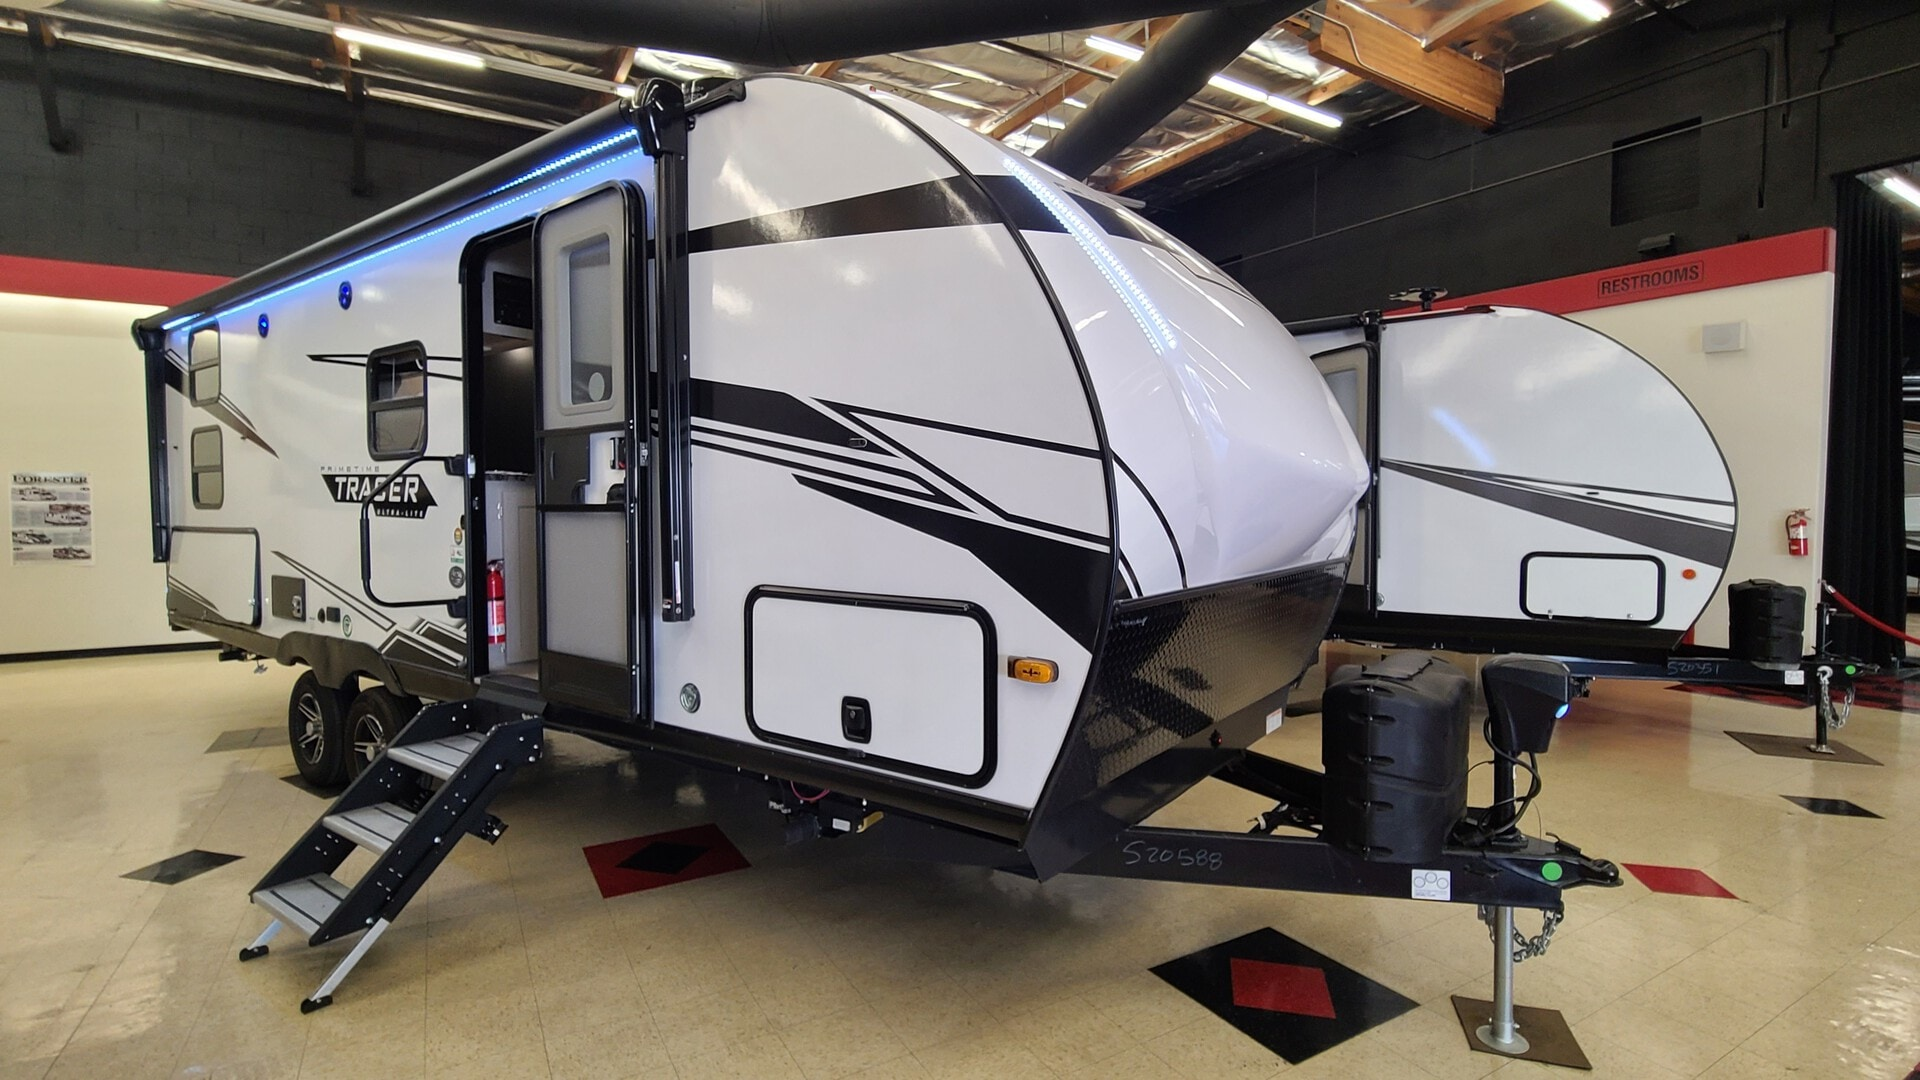 New, 2022, Tracer, 24DBS, Travel Trailers